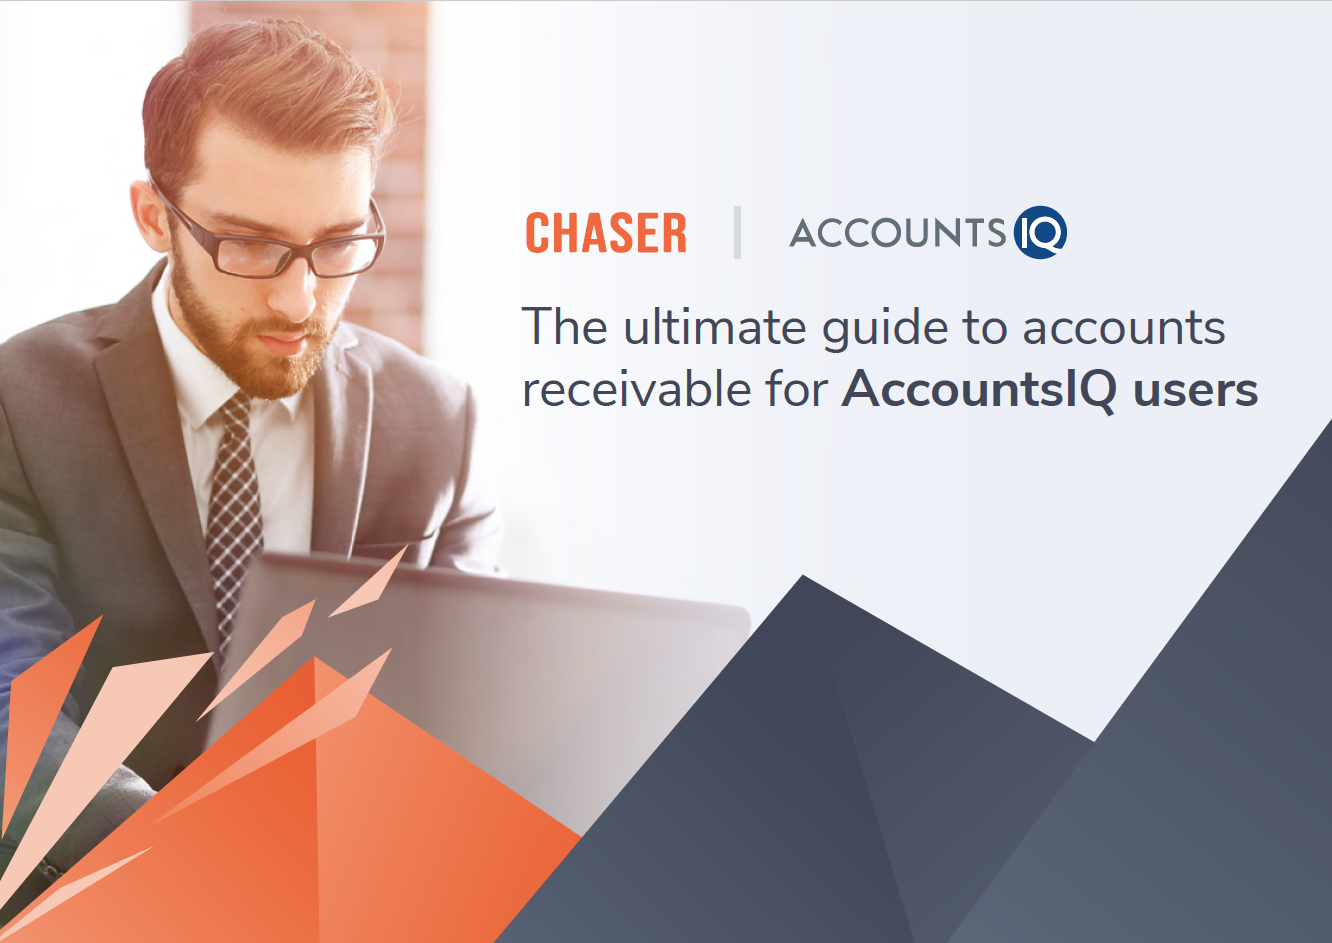 Chaser-The ultimate guide to accounts receivable for AccountsIQ usersthumbnail Preview 1